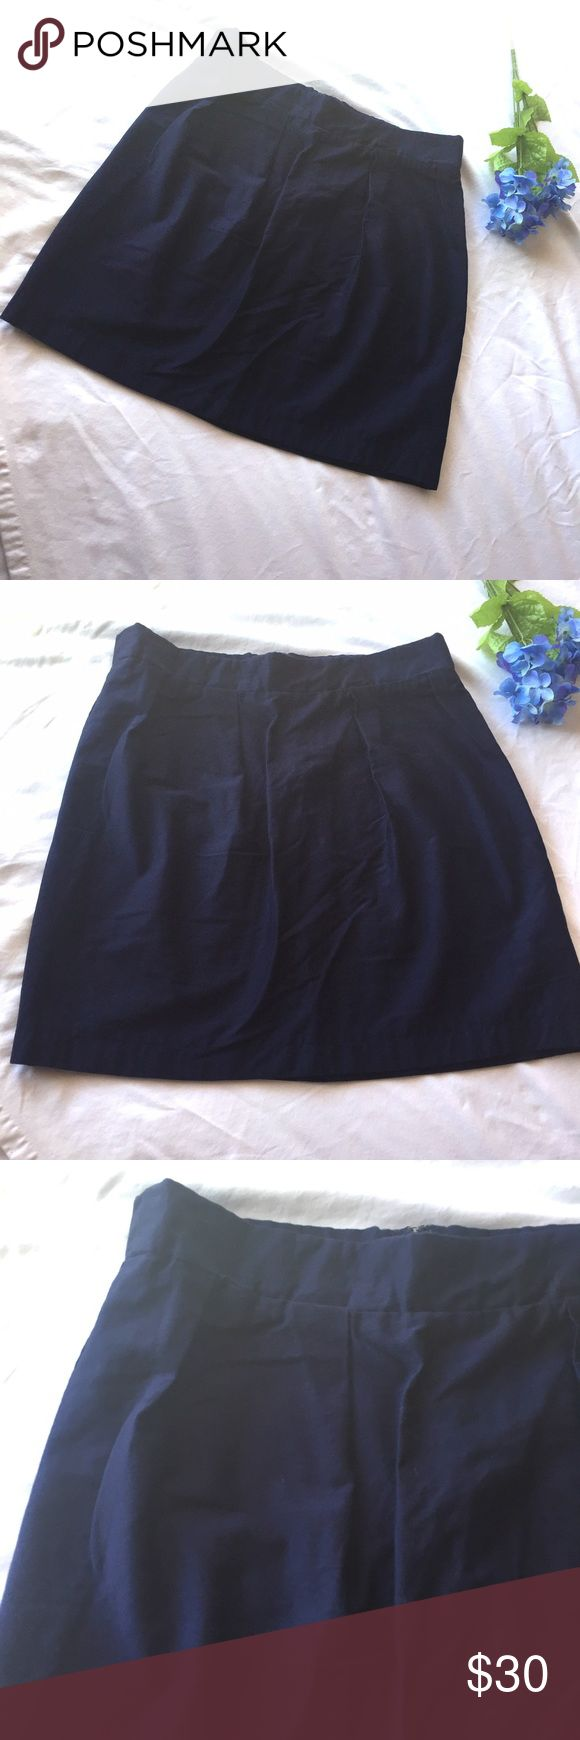 """Frill Clothing Charlotte Skirt SZ 18 Shark Tank Navy blue skirt by Frill Clothing, the One Stop Sorority Shop. Tagged size 18; please note these measurements: Waist flat across  """" Waist circumference 37.5"""", Length  """" hip 47.5"""". This would be small for a standard size 18. I believe this is the Charlotte Skirt. Waistband measures 2"""". Sits at the natural waist. Concealed rear zipper.  This company, Frill Clothing, was featured on an episode of Shark Tank. Frill Clothing Skirts Mini"""